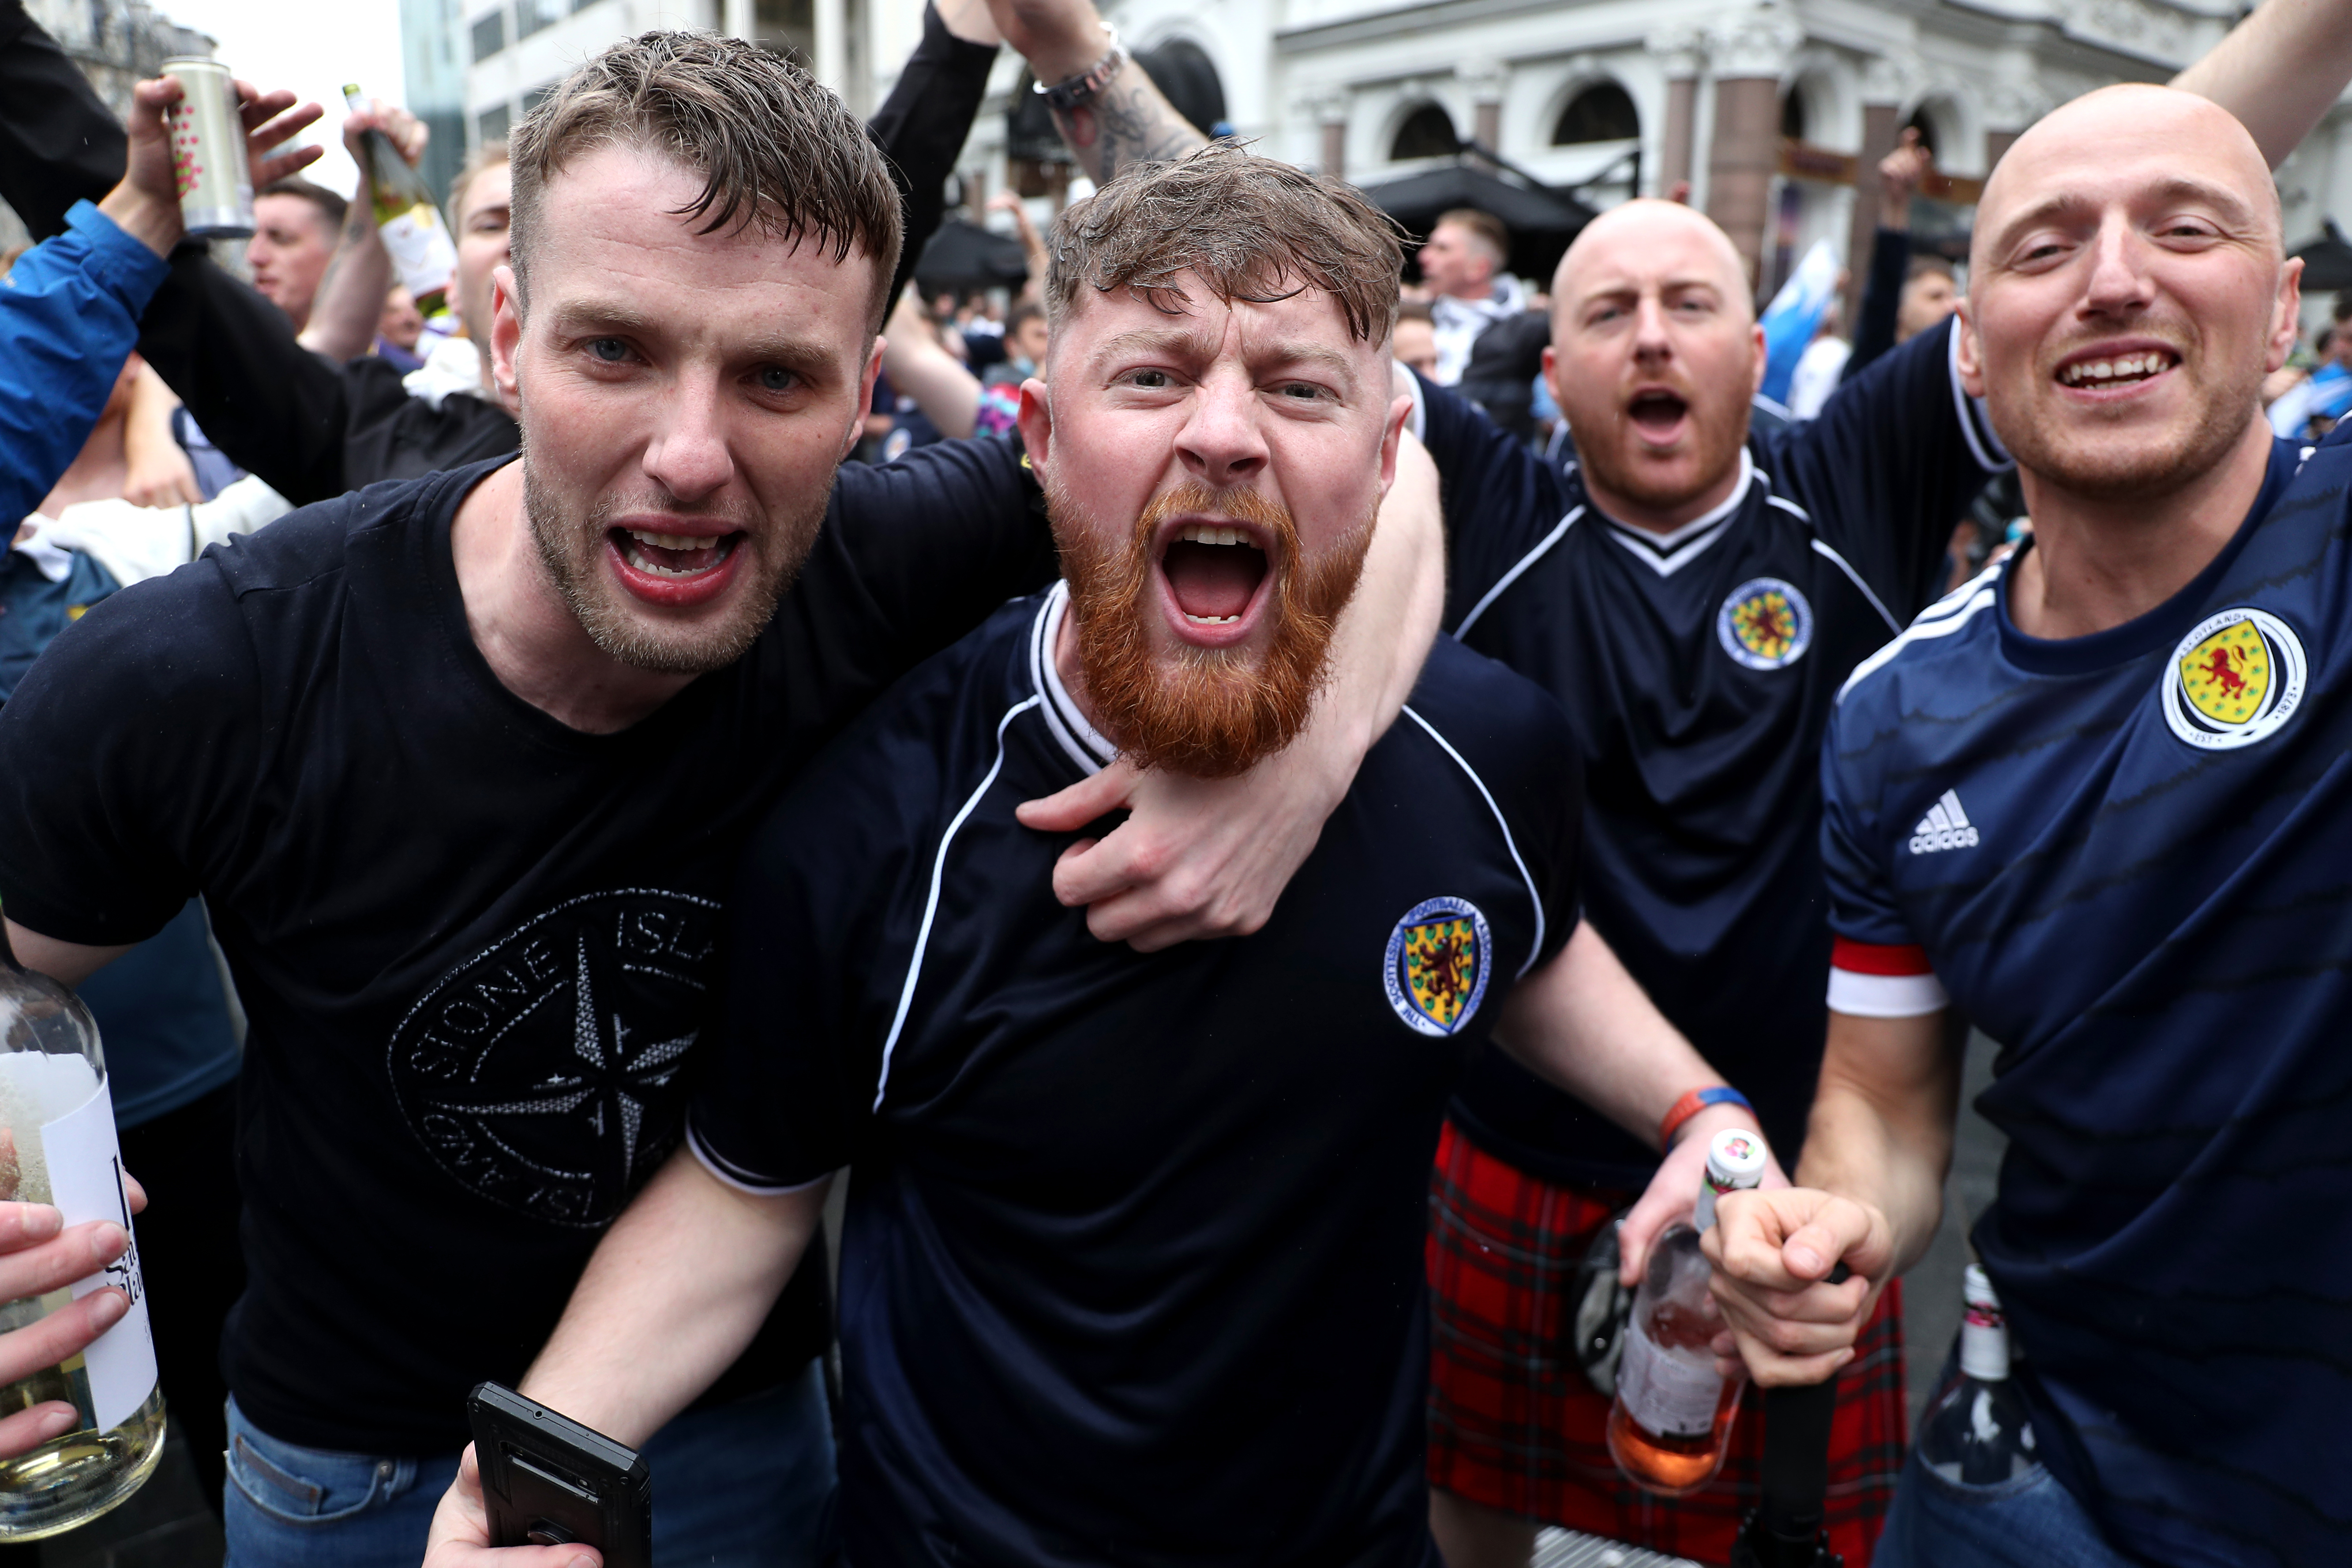 <p>Scotland fans gather in Leicester Square before the UEFA Euro 2020 match between England and Scotland later tonight. Picture date: Friday June 18, 2021.</p>